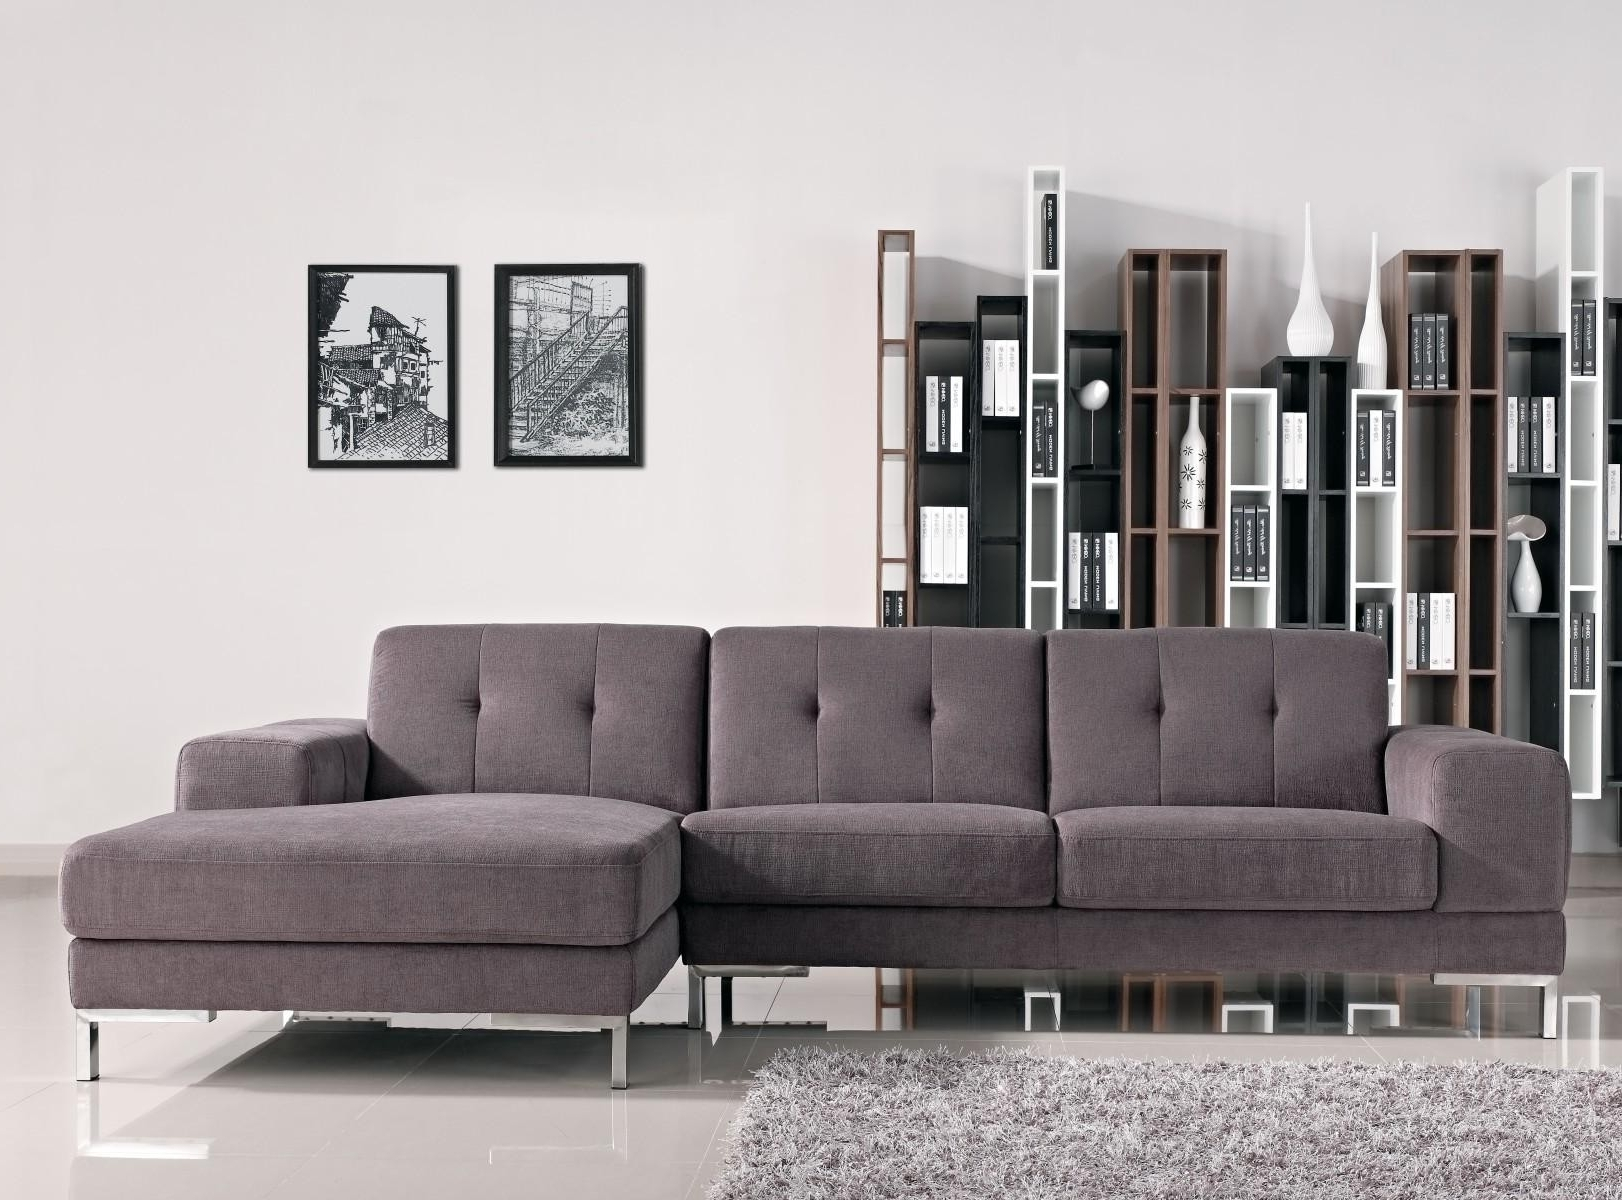 Best And Newest Hawaii Sectional Sofas Intended For Furniture : Couch Tuner Reviews Futon Furniture In Hawaii Futon (View 12 of 20)